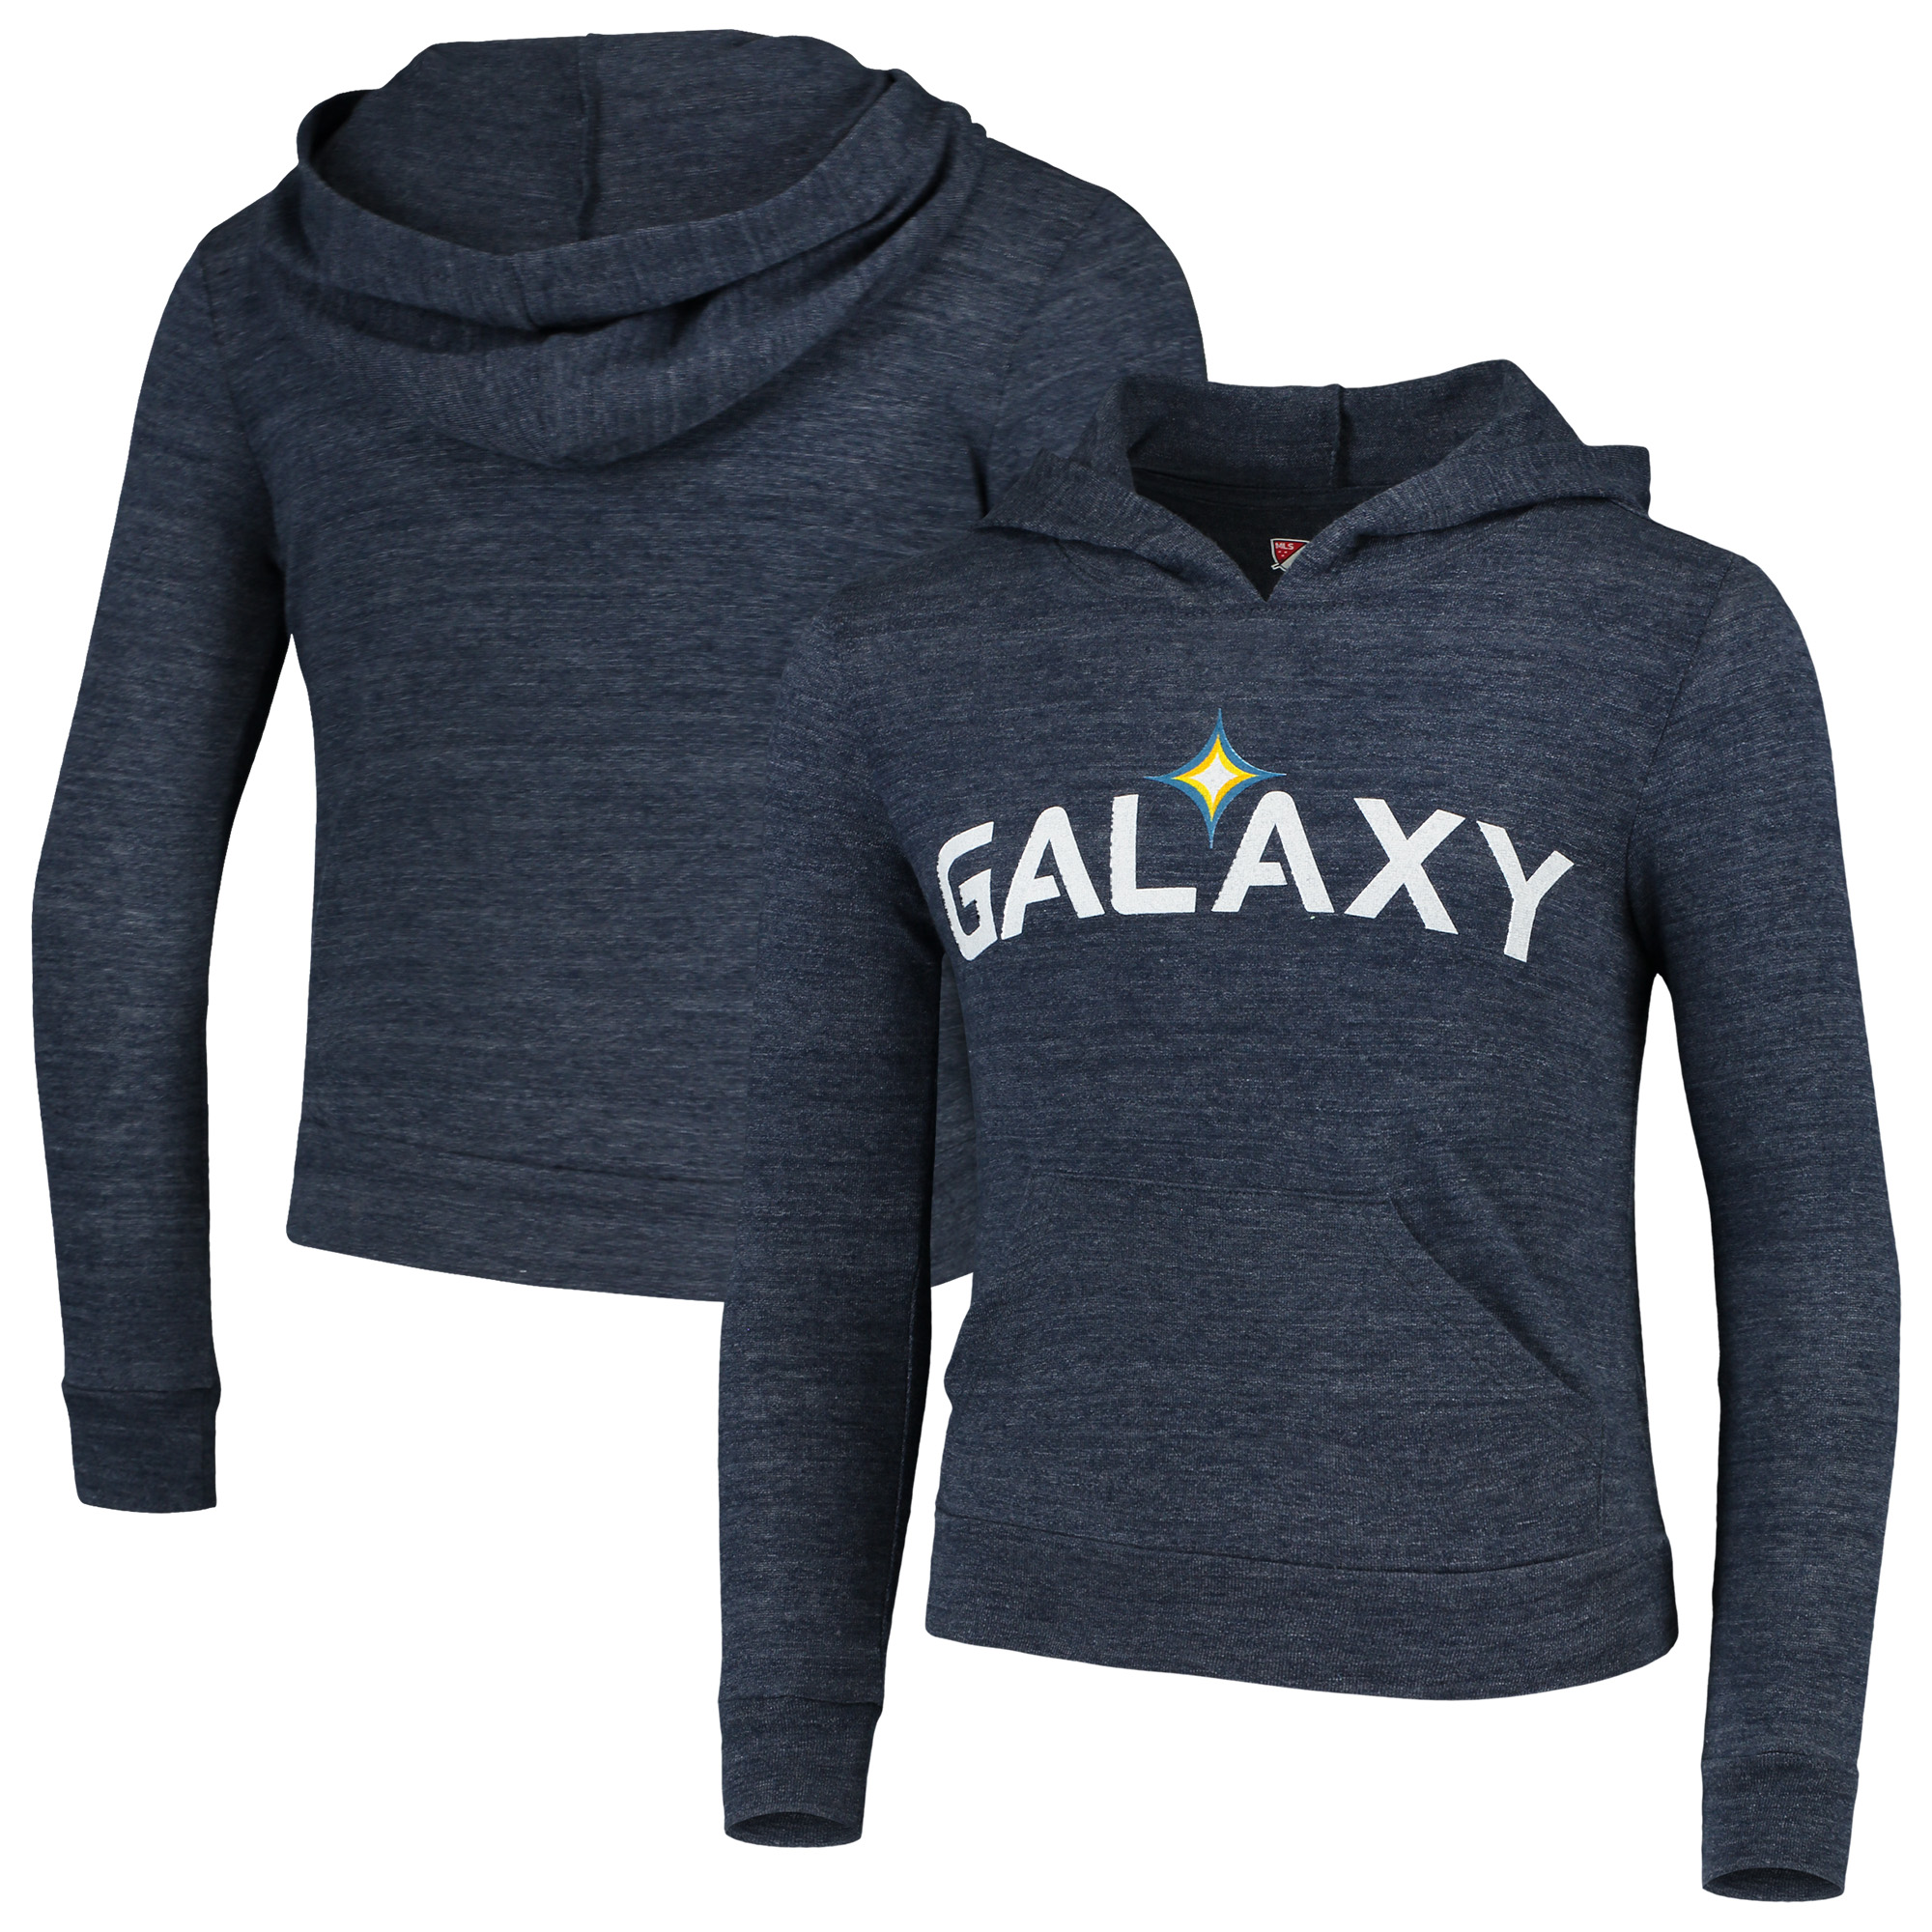 LA Galaxy 5th & Ocean by New Era Girls Youth Tri-Blend Pullover Hoodie - Heathered Navy